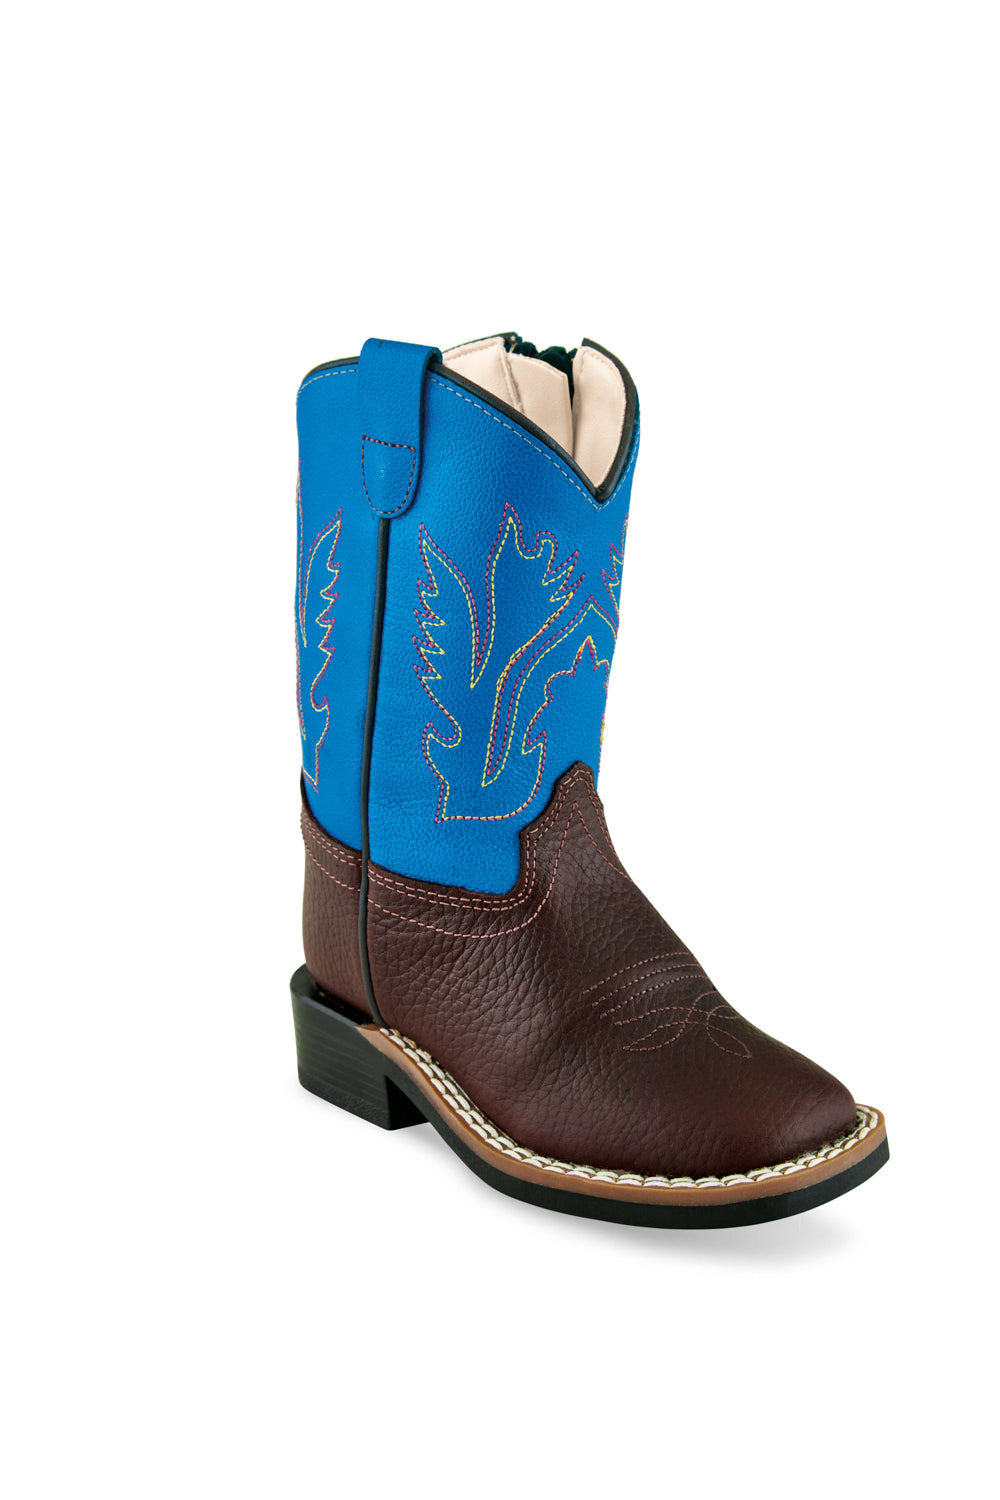 Old West Rust/Electric Blue Toddler